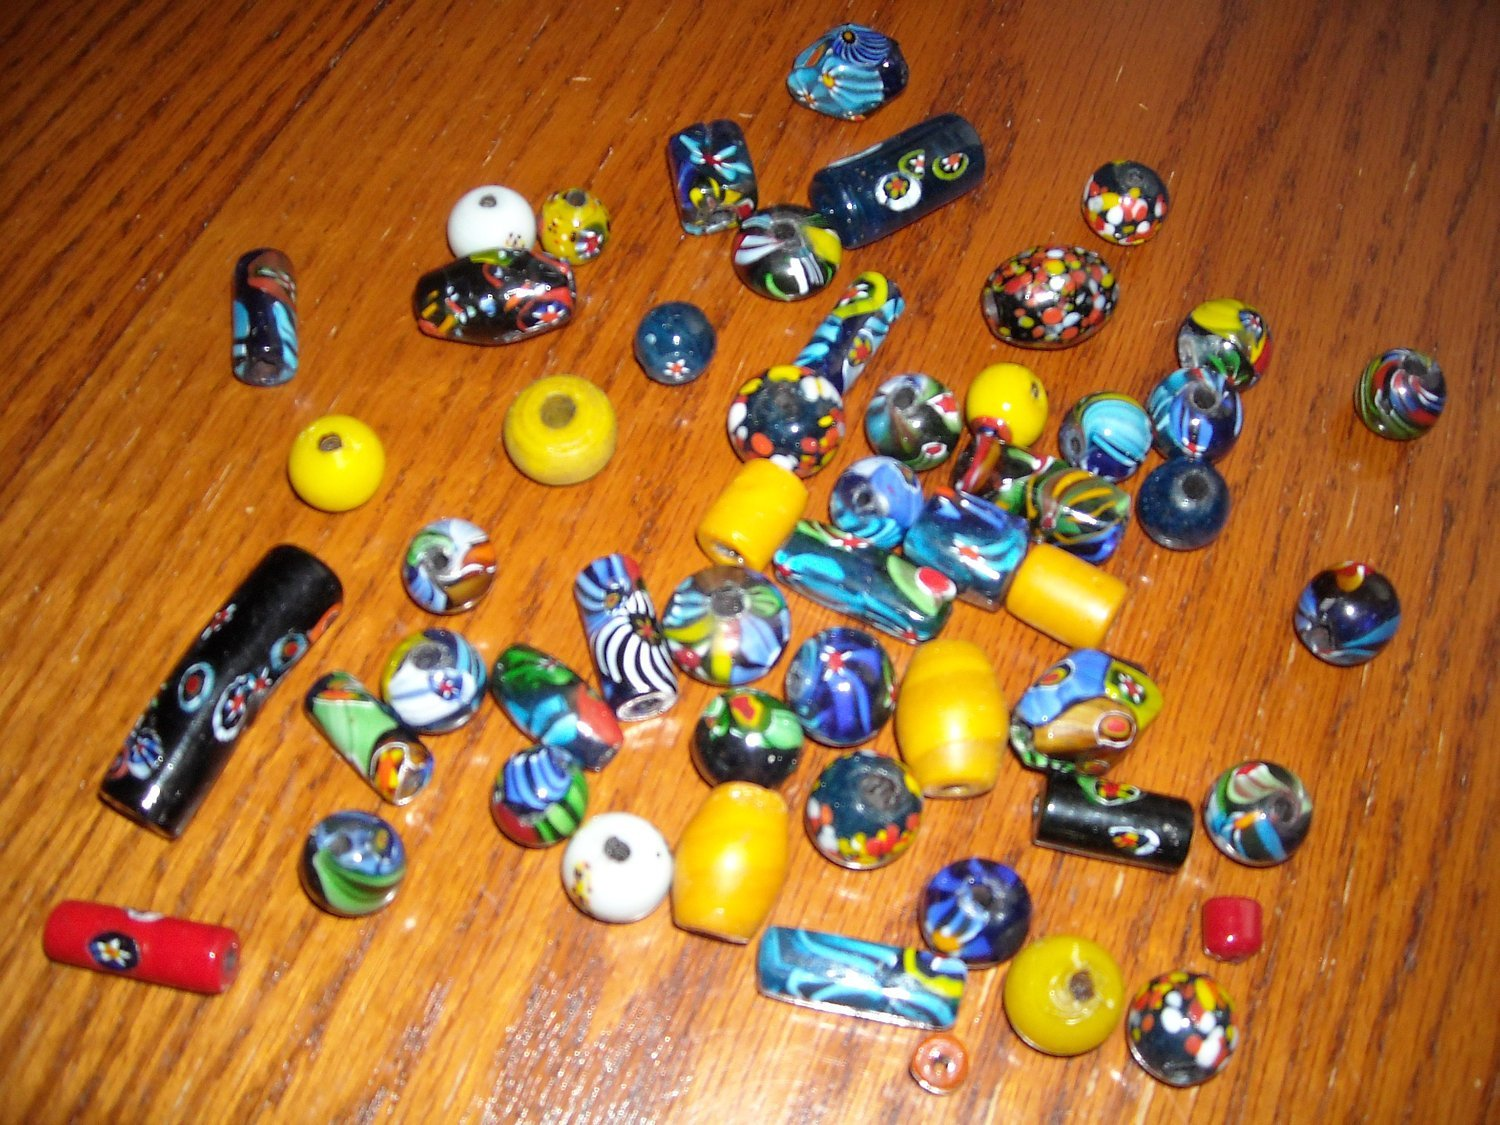 Vintage Trade Beads Hand Crafted Art Glass Mixed Shapes & Colors 54 Total